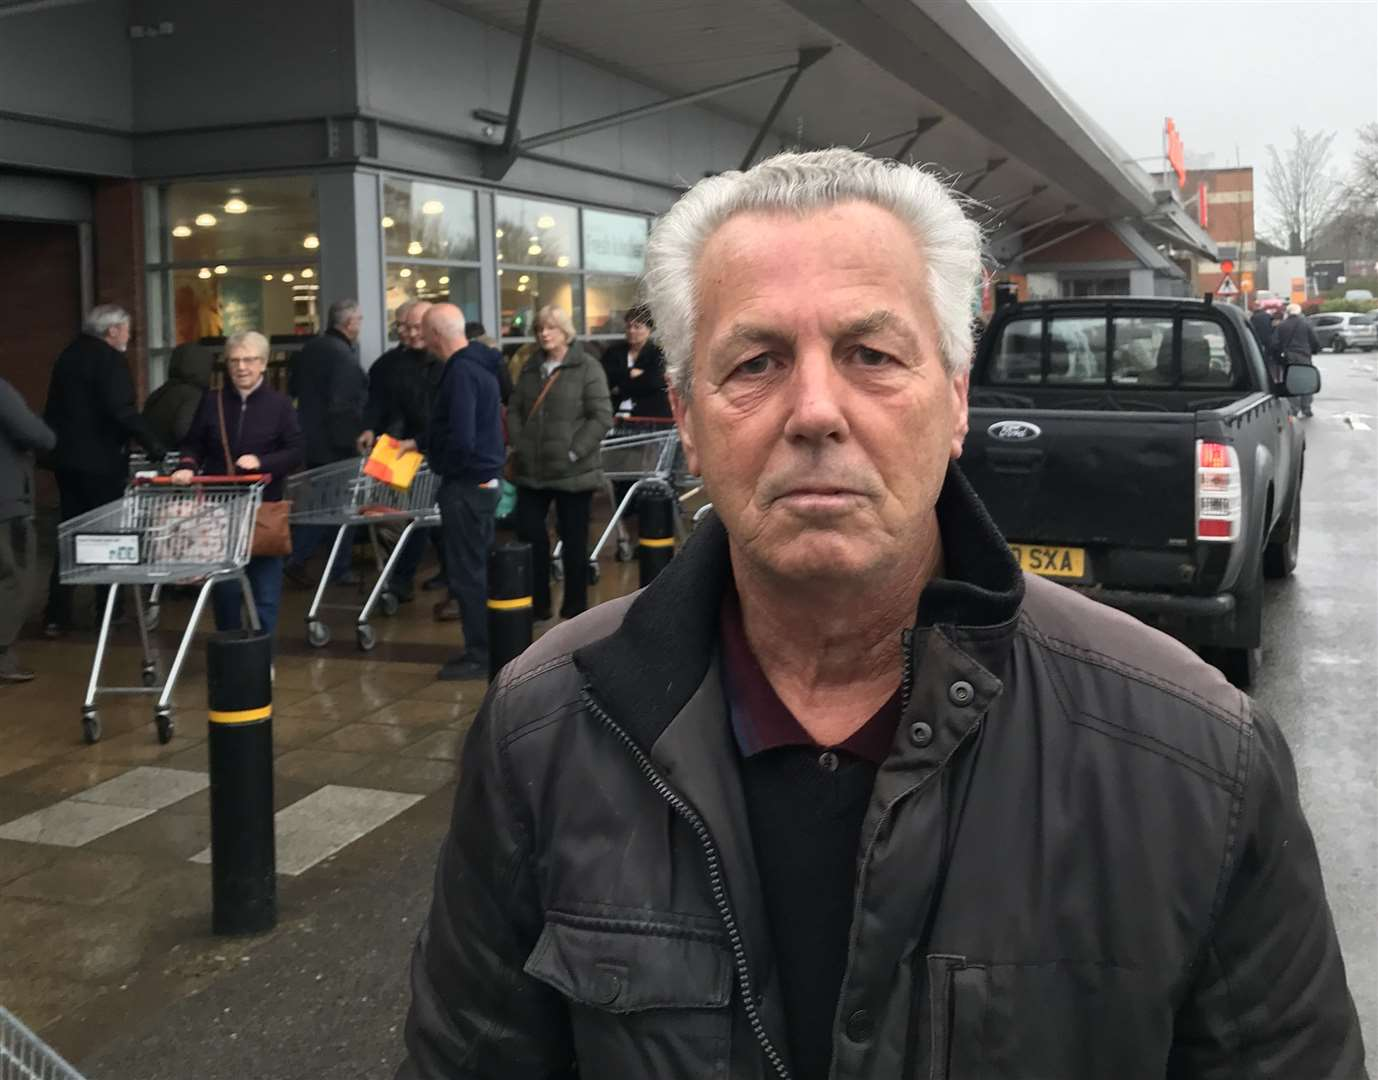 Bernard Poultney, 70, of School Lane, Iwade, was among those in the queue at Sainsbury's in Sittingbourne